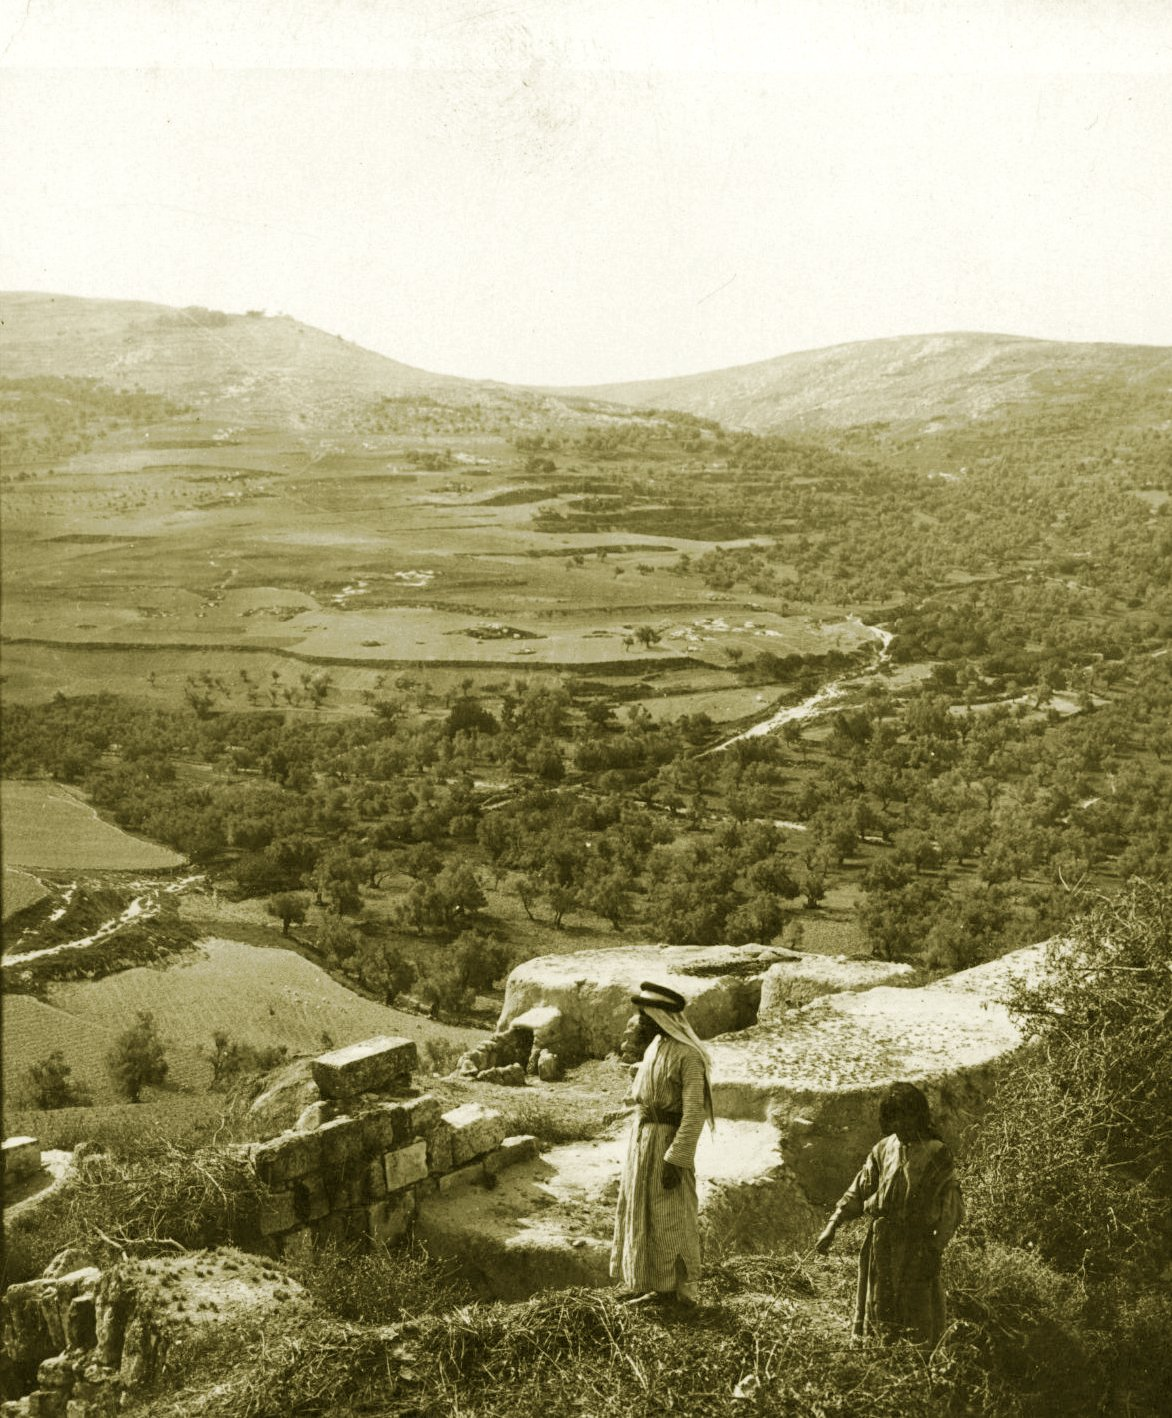 Nablus - نابلس : NABLUS - Late 19th, early 20th c. 115 - Looking south-east towards Nablus, circa 1900 (Underwood &Underwood) (Per Reem Ackall)